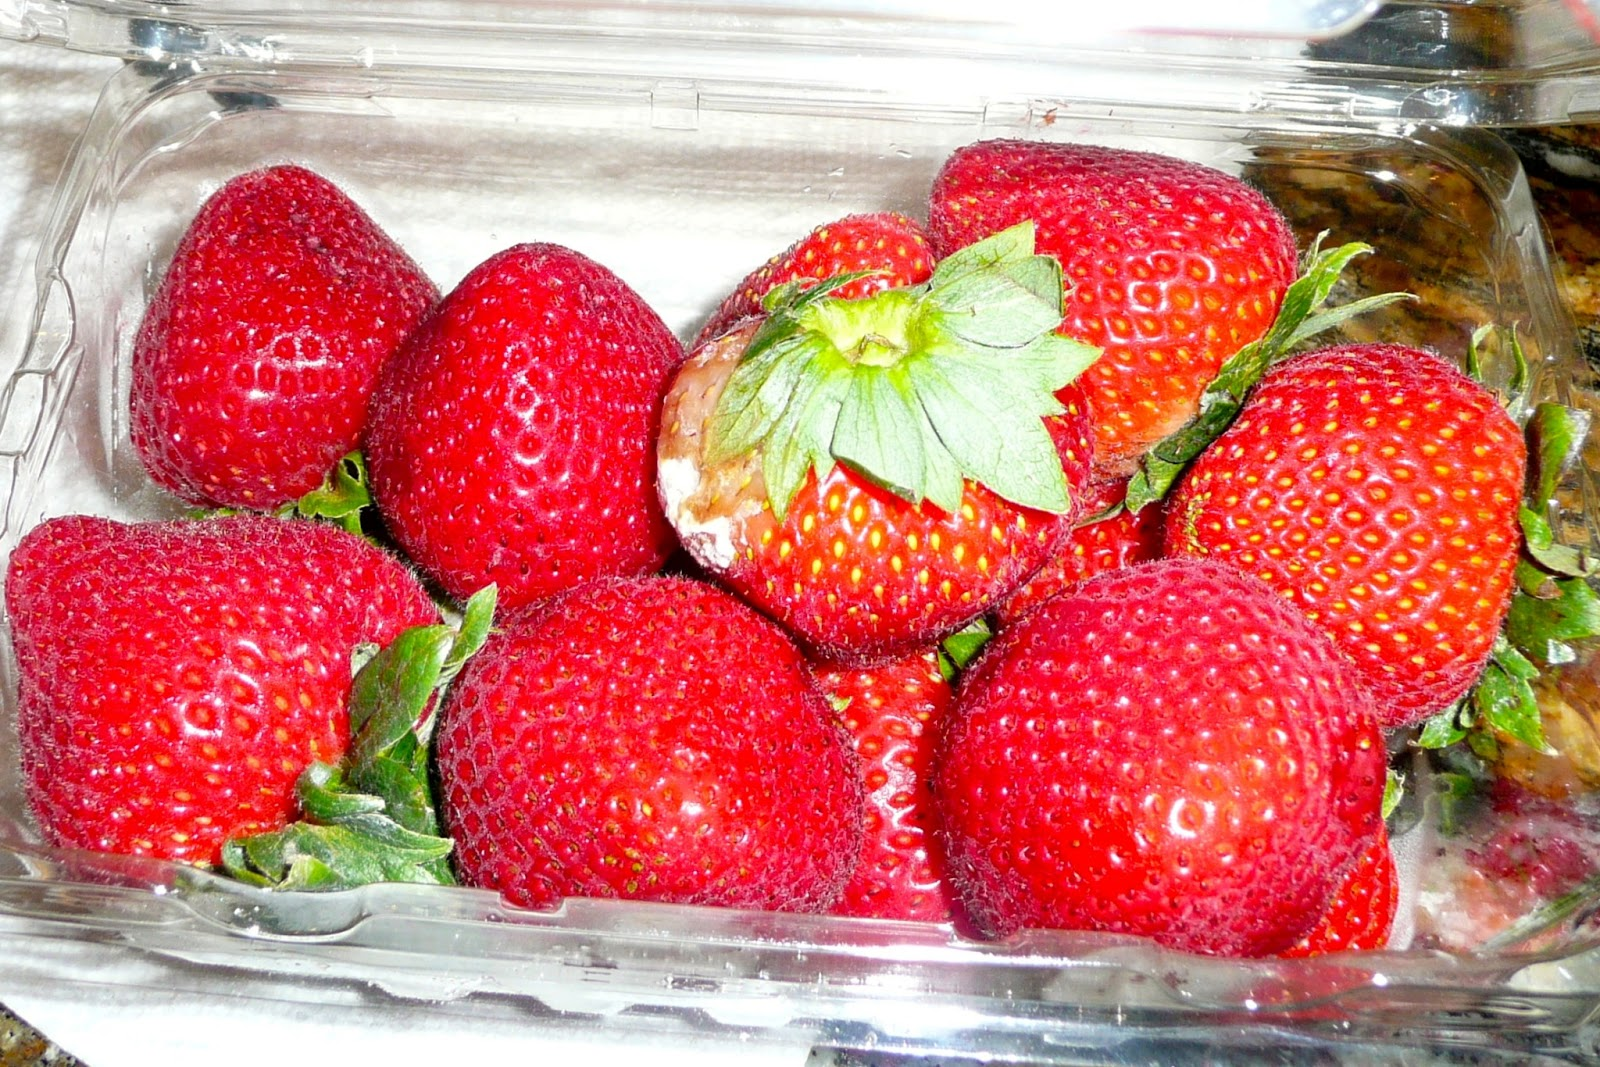 produce clerk the produce clerks handbook by rick chong bad quality moldy strawberries in a clamshell